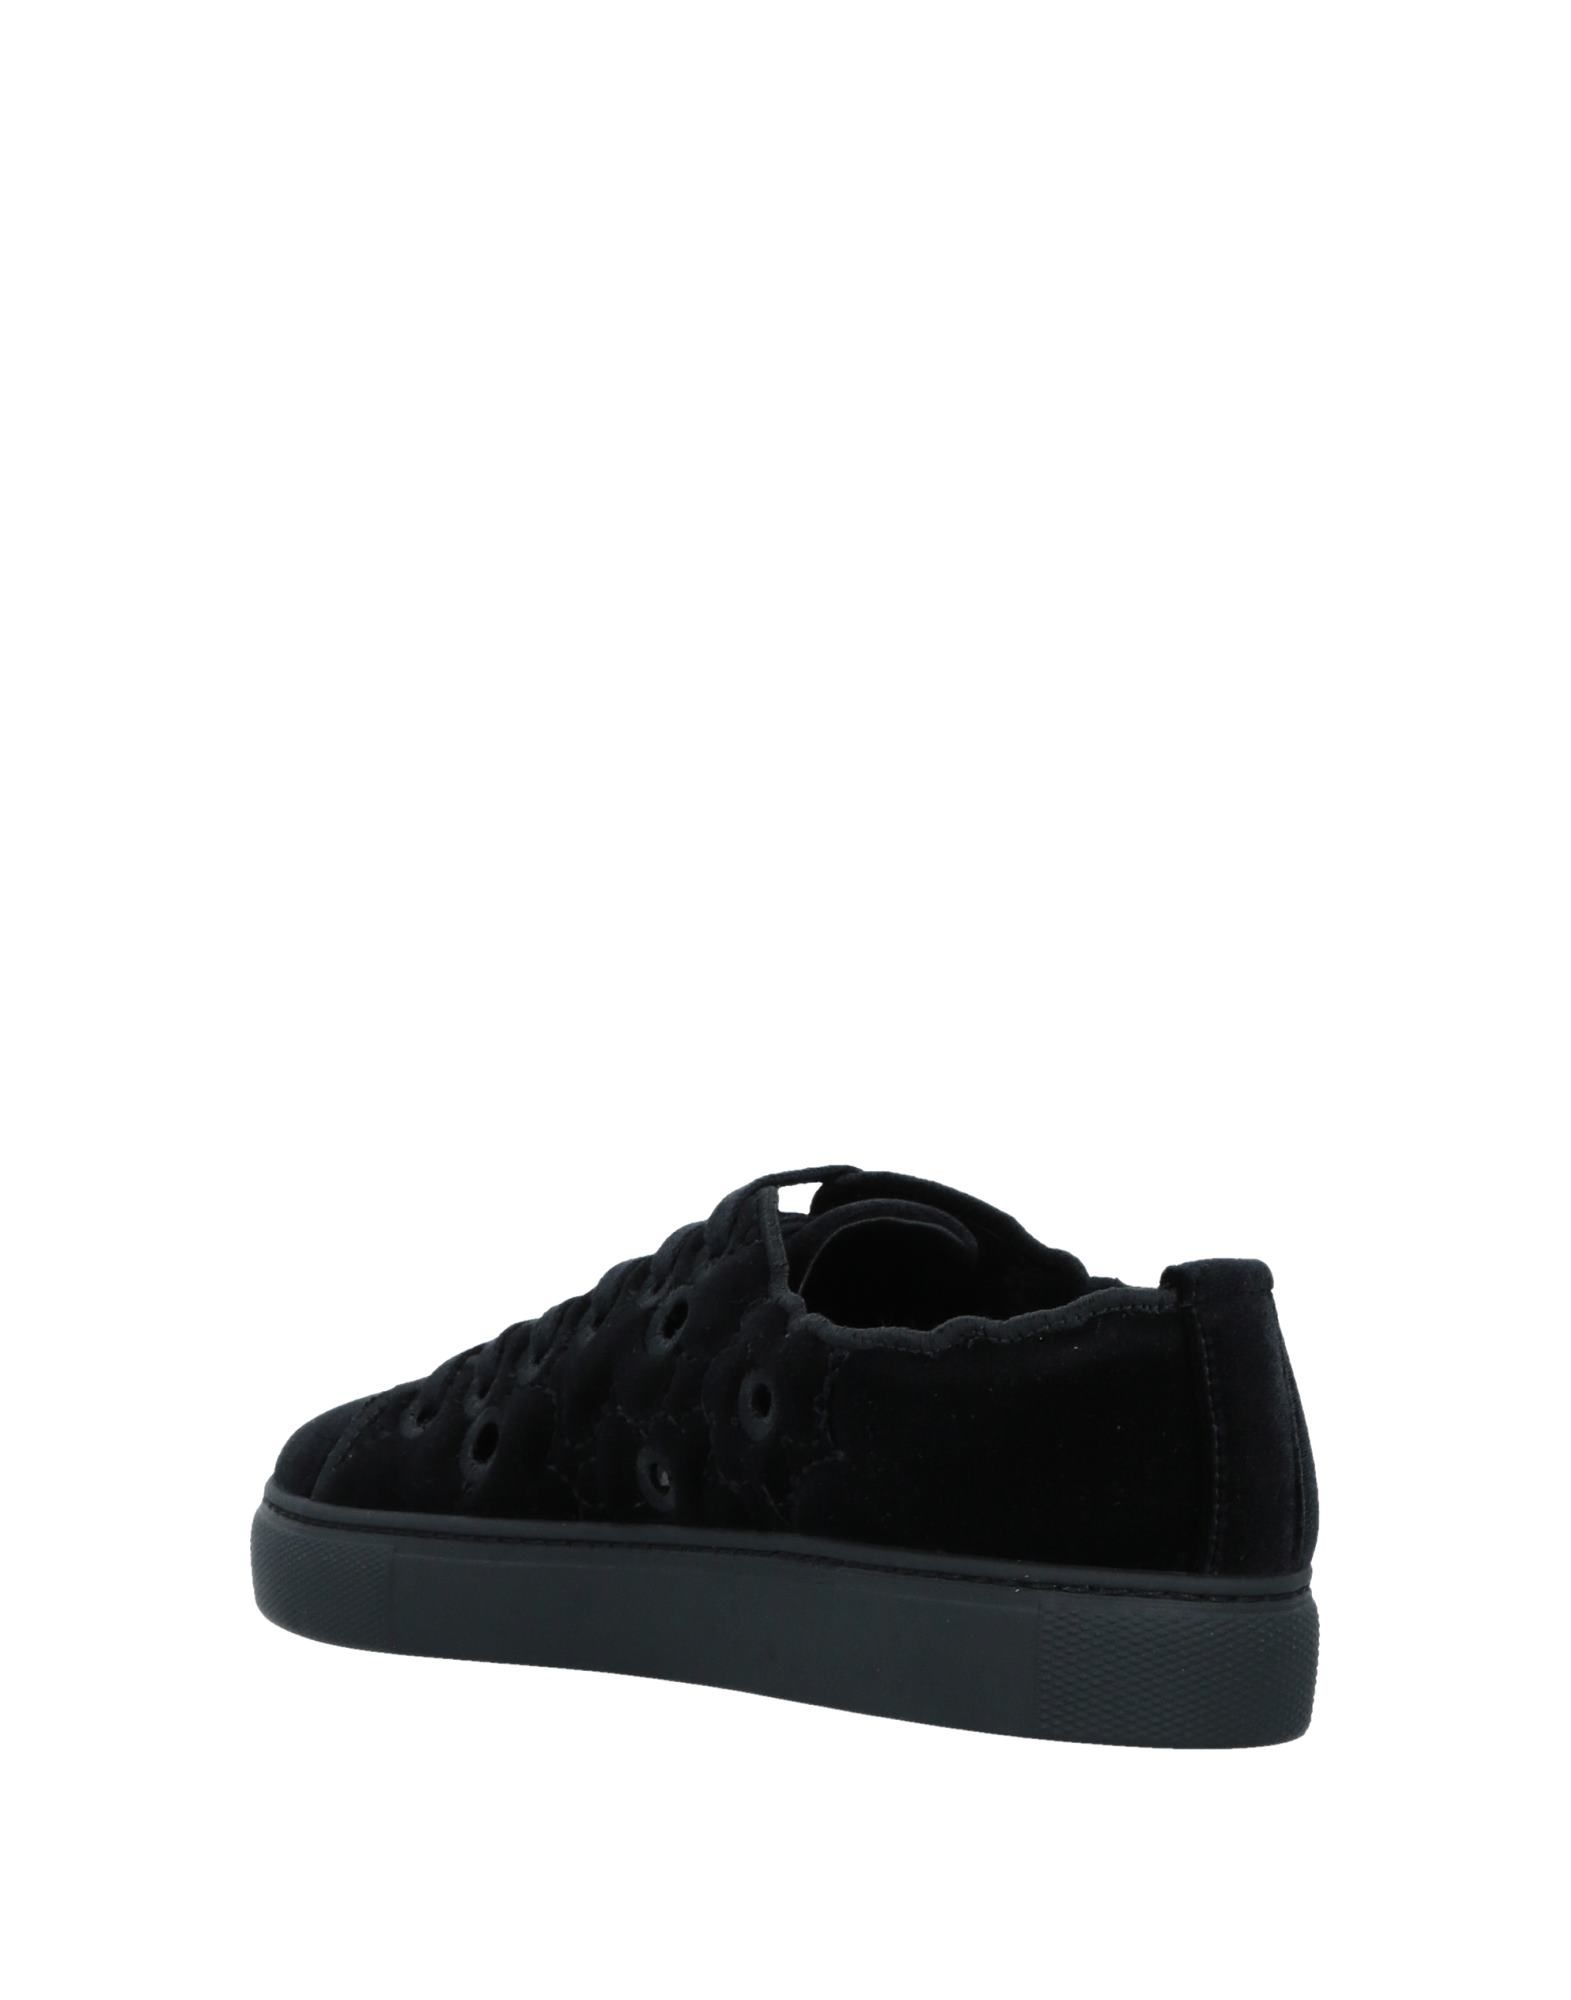 Simone on Rocha Sneakers - Women Simone Rocha Sneakers online on Simone  Canada - 11470656FJ 842755